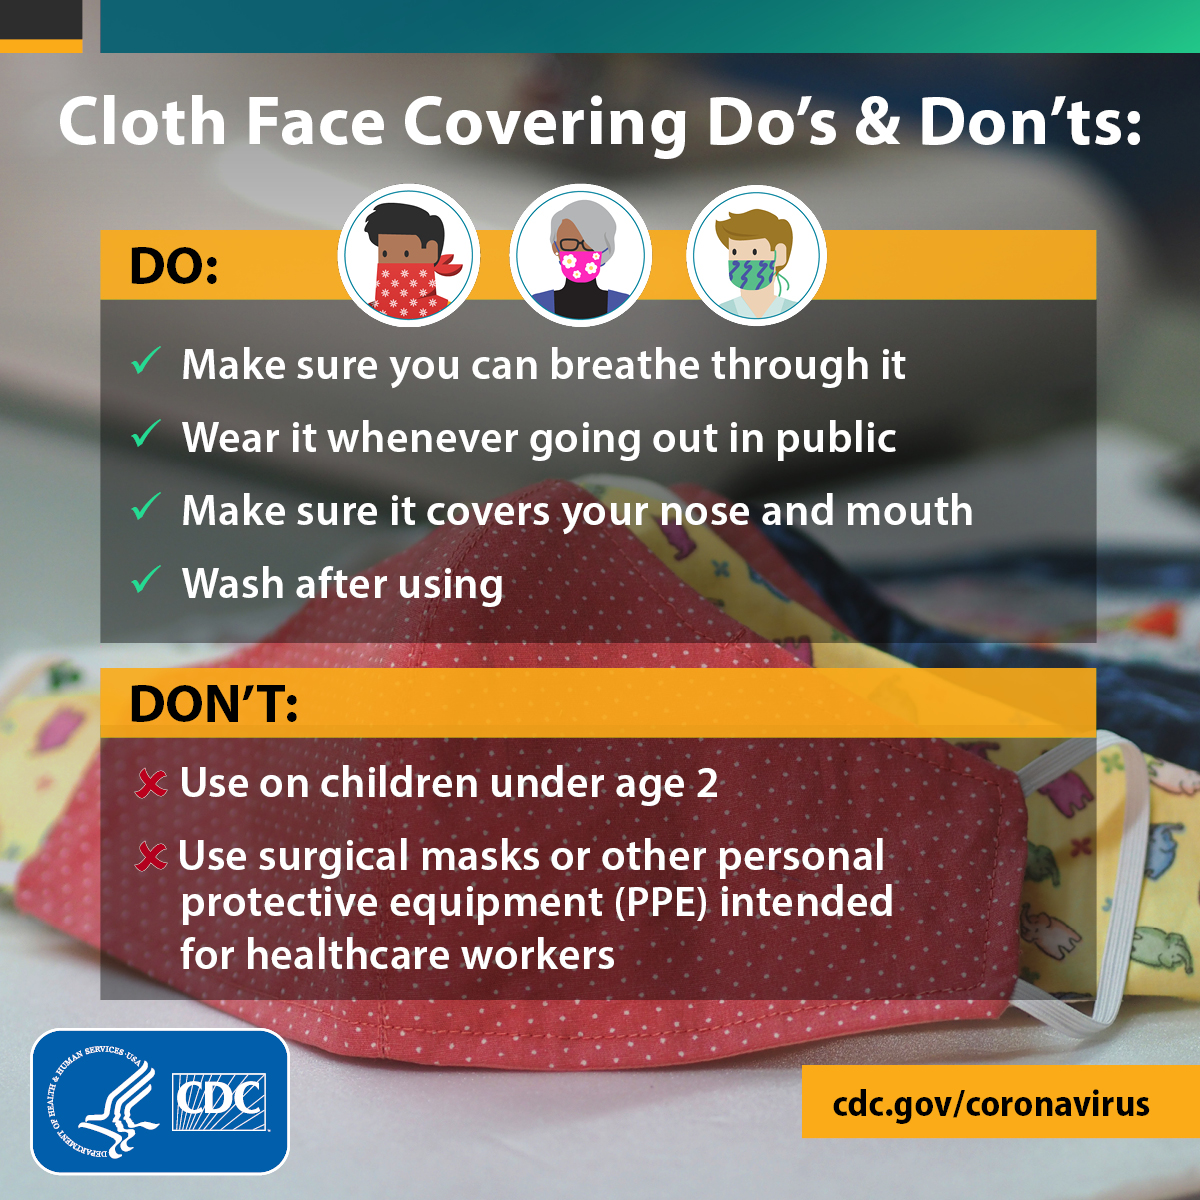 Facing covering do's and don'ts